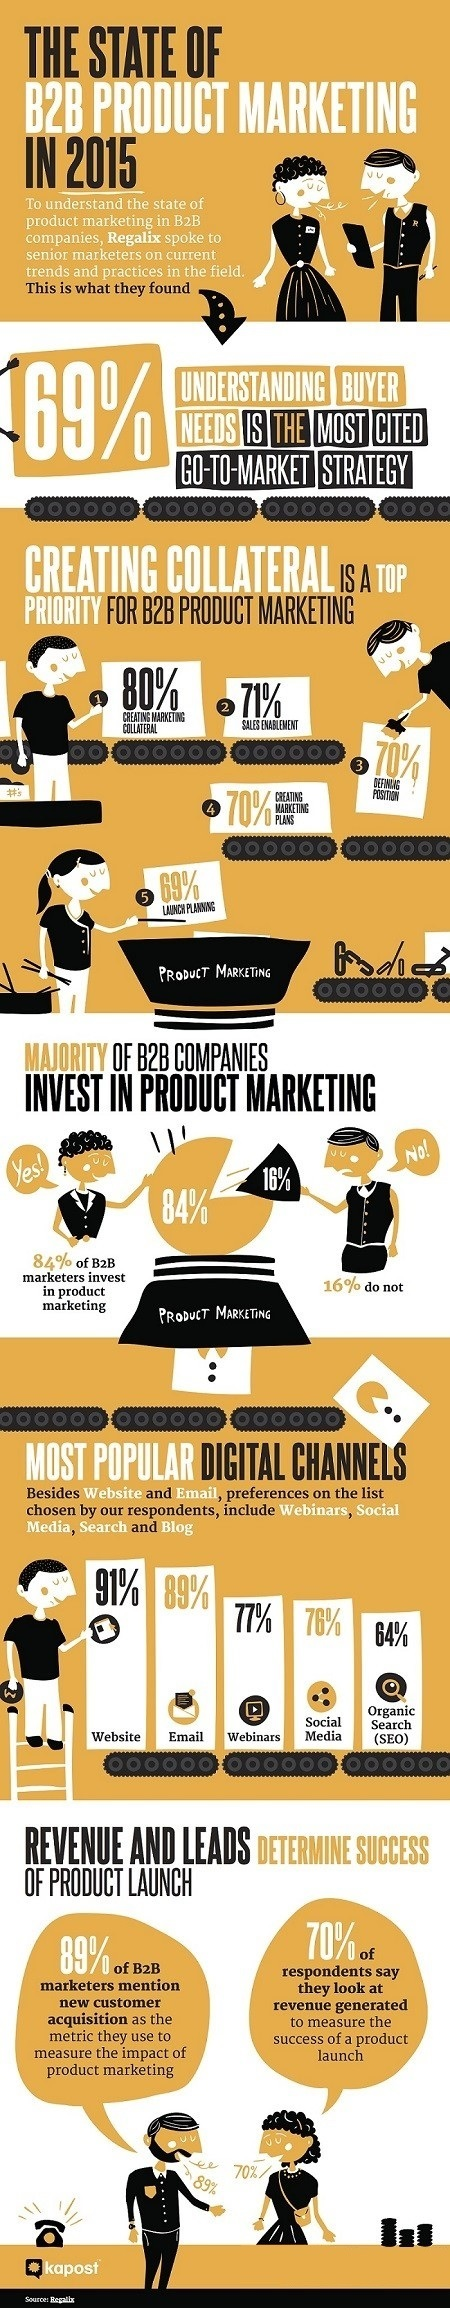 The State of B2B Product Marketing | Social Media, Digital Marketing | Scoop.it